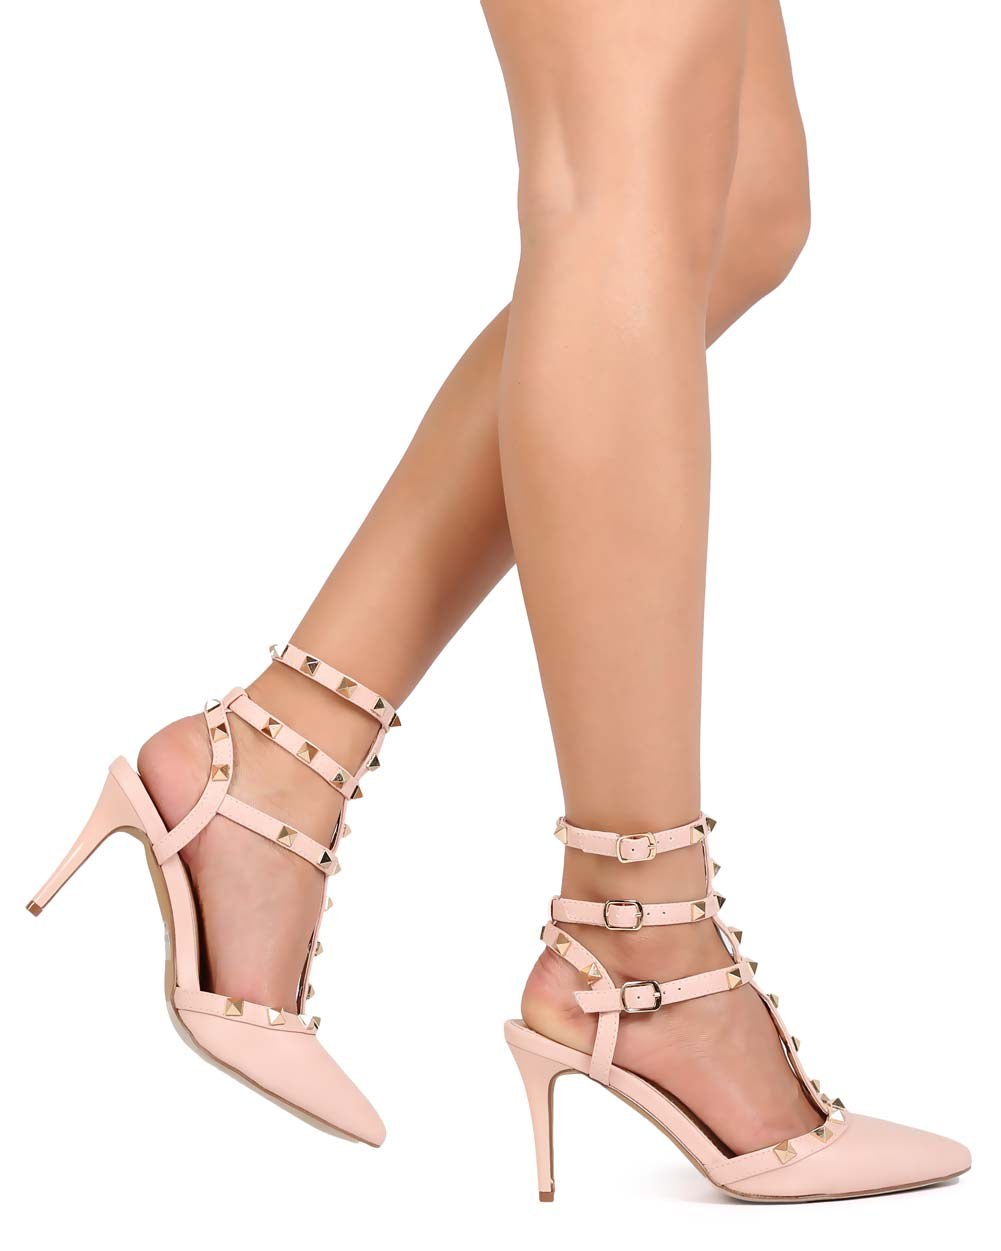 Pink Candy Stud Cage Pointed T-bar Ankle Stiletto Gladiator Party Pumps